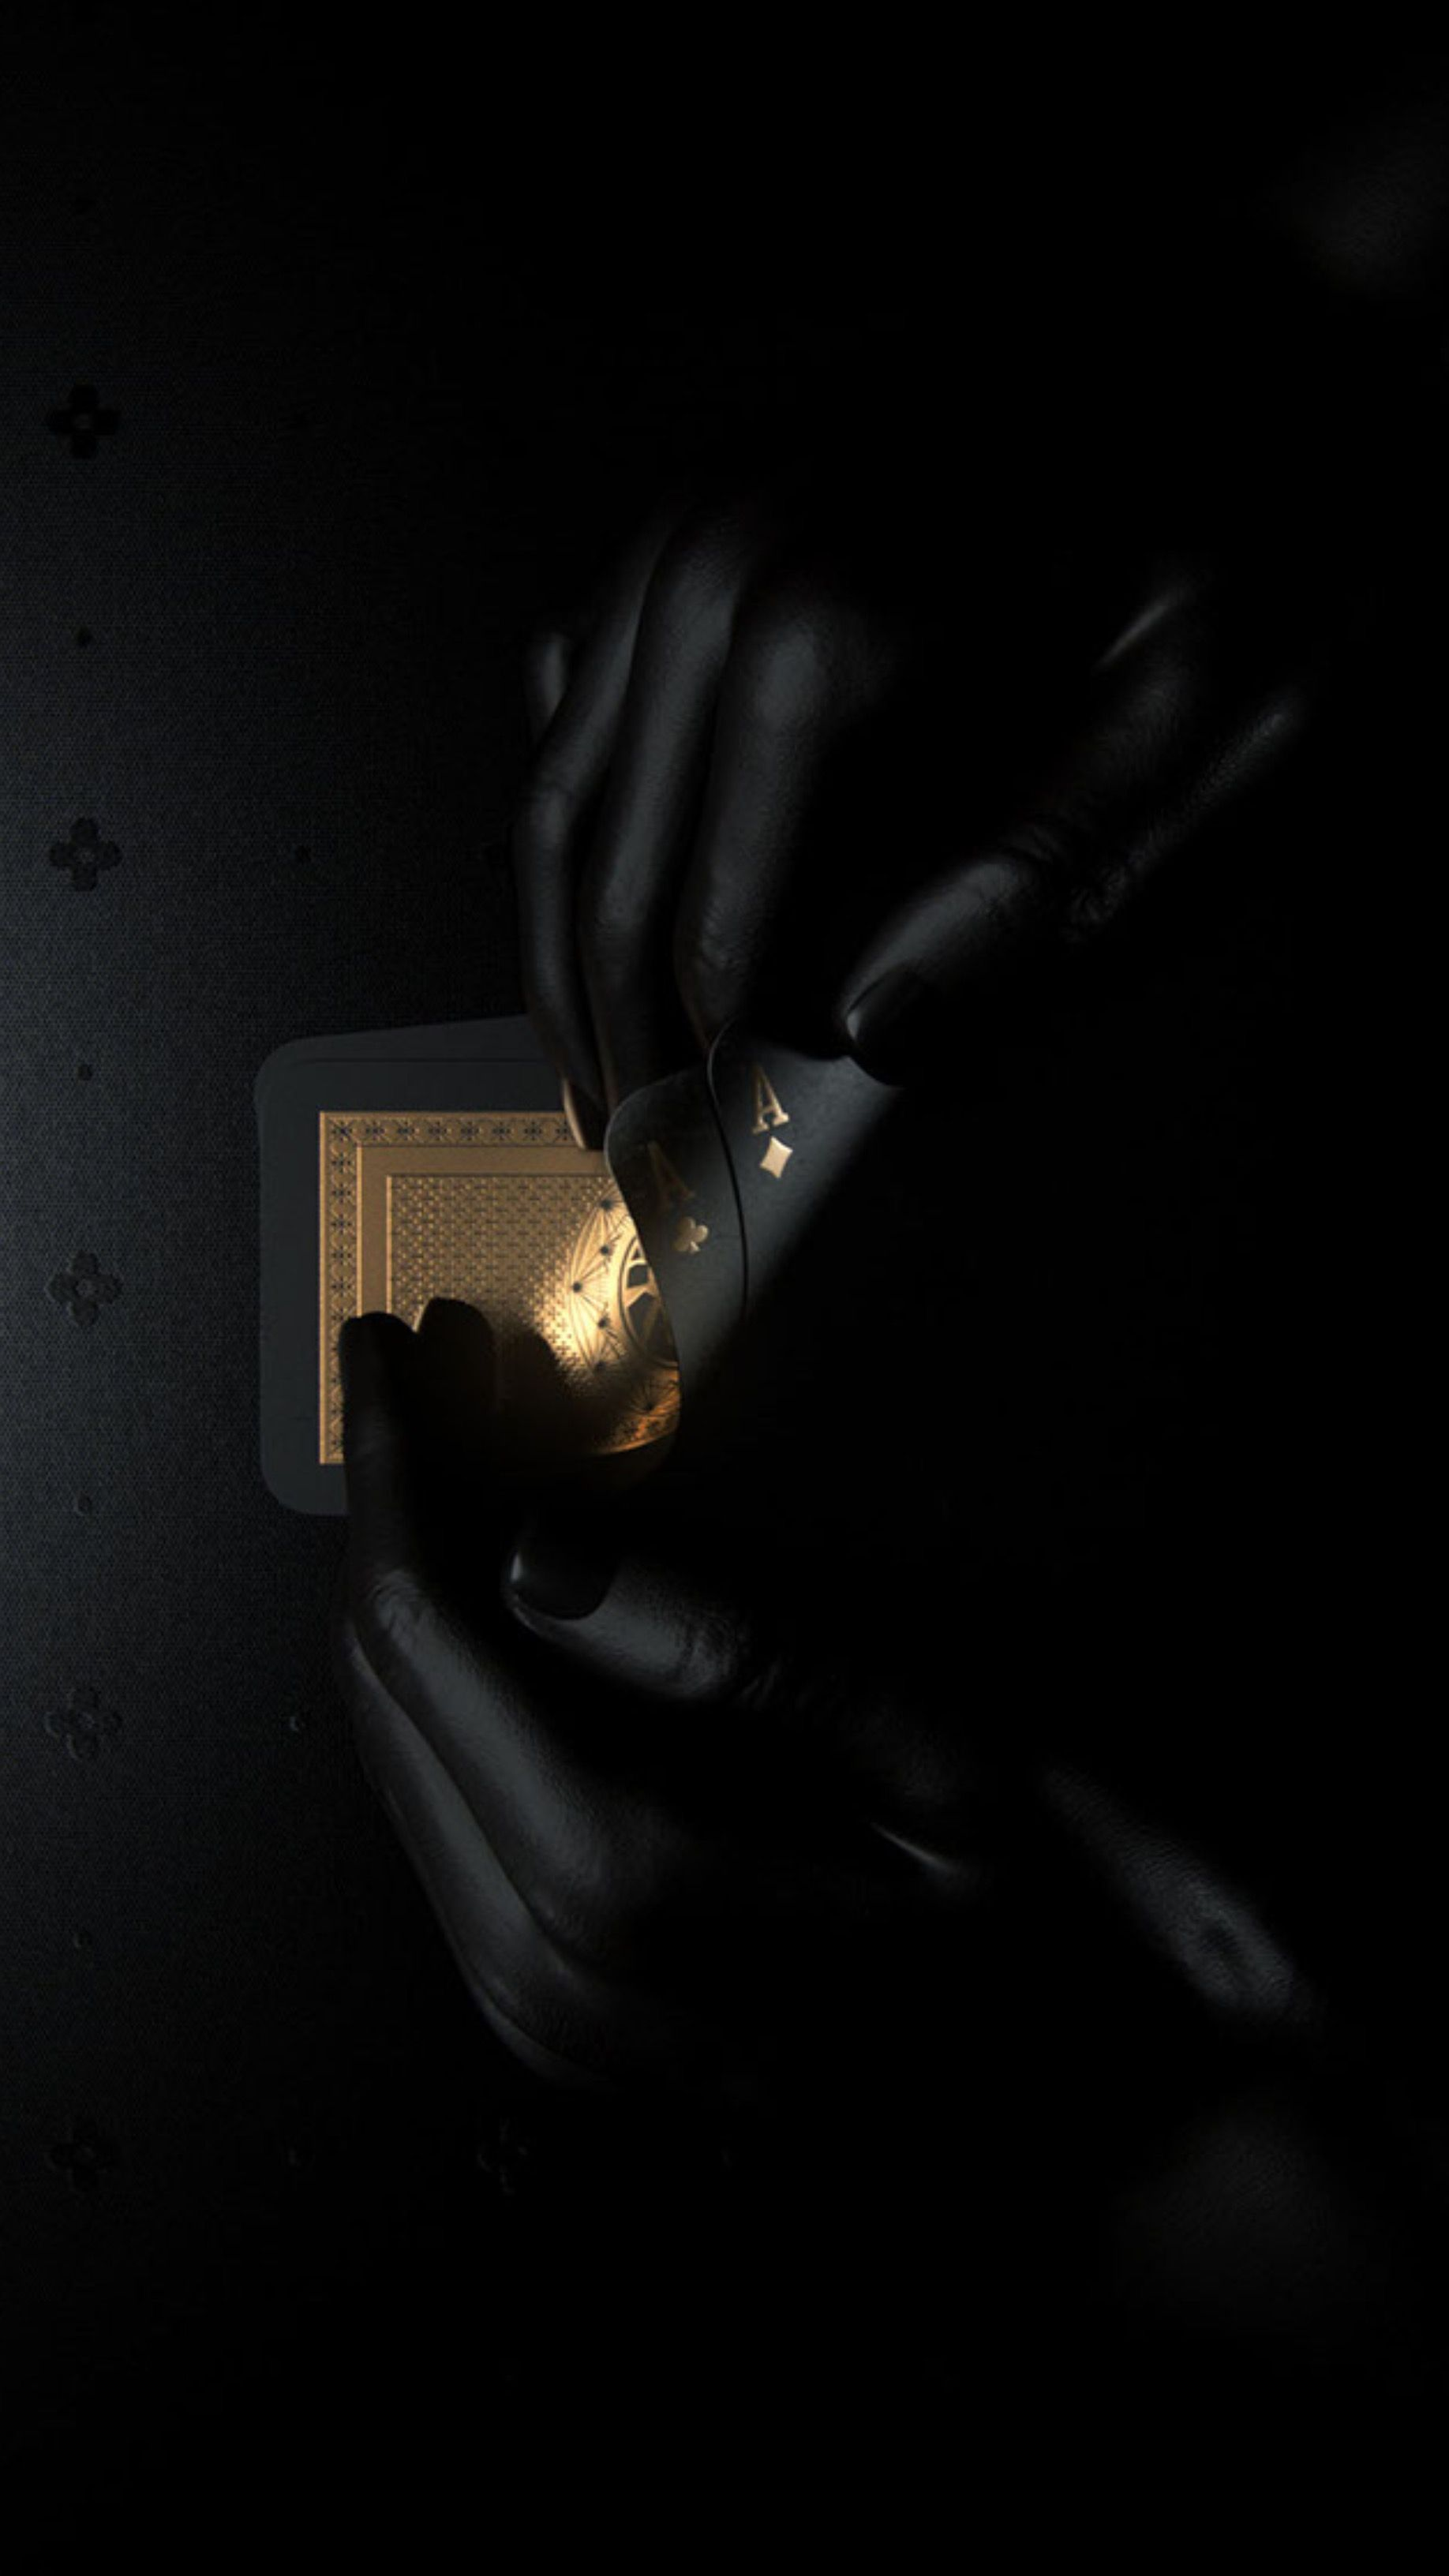 Black Phone Backgrounds Part 2 Black Phone Background Black And Gold Aesthetic Black Wallpaper